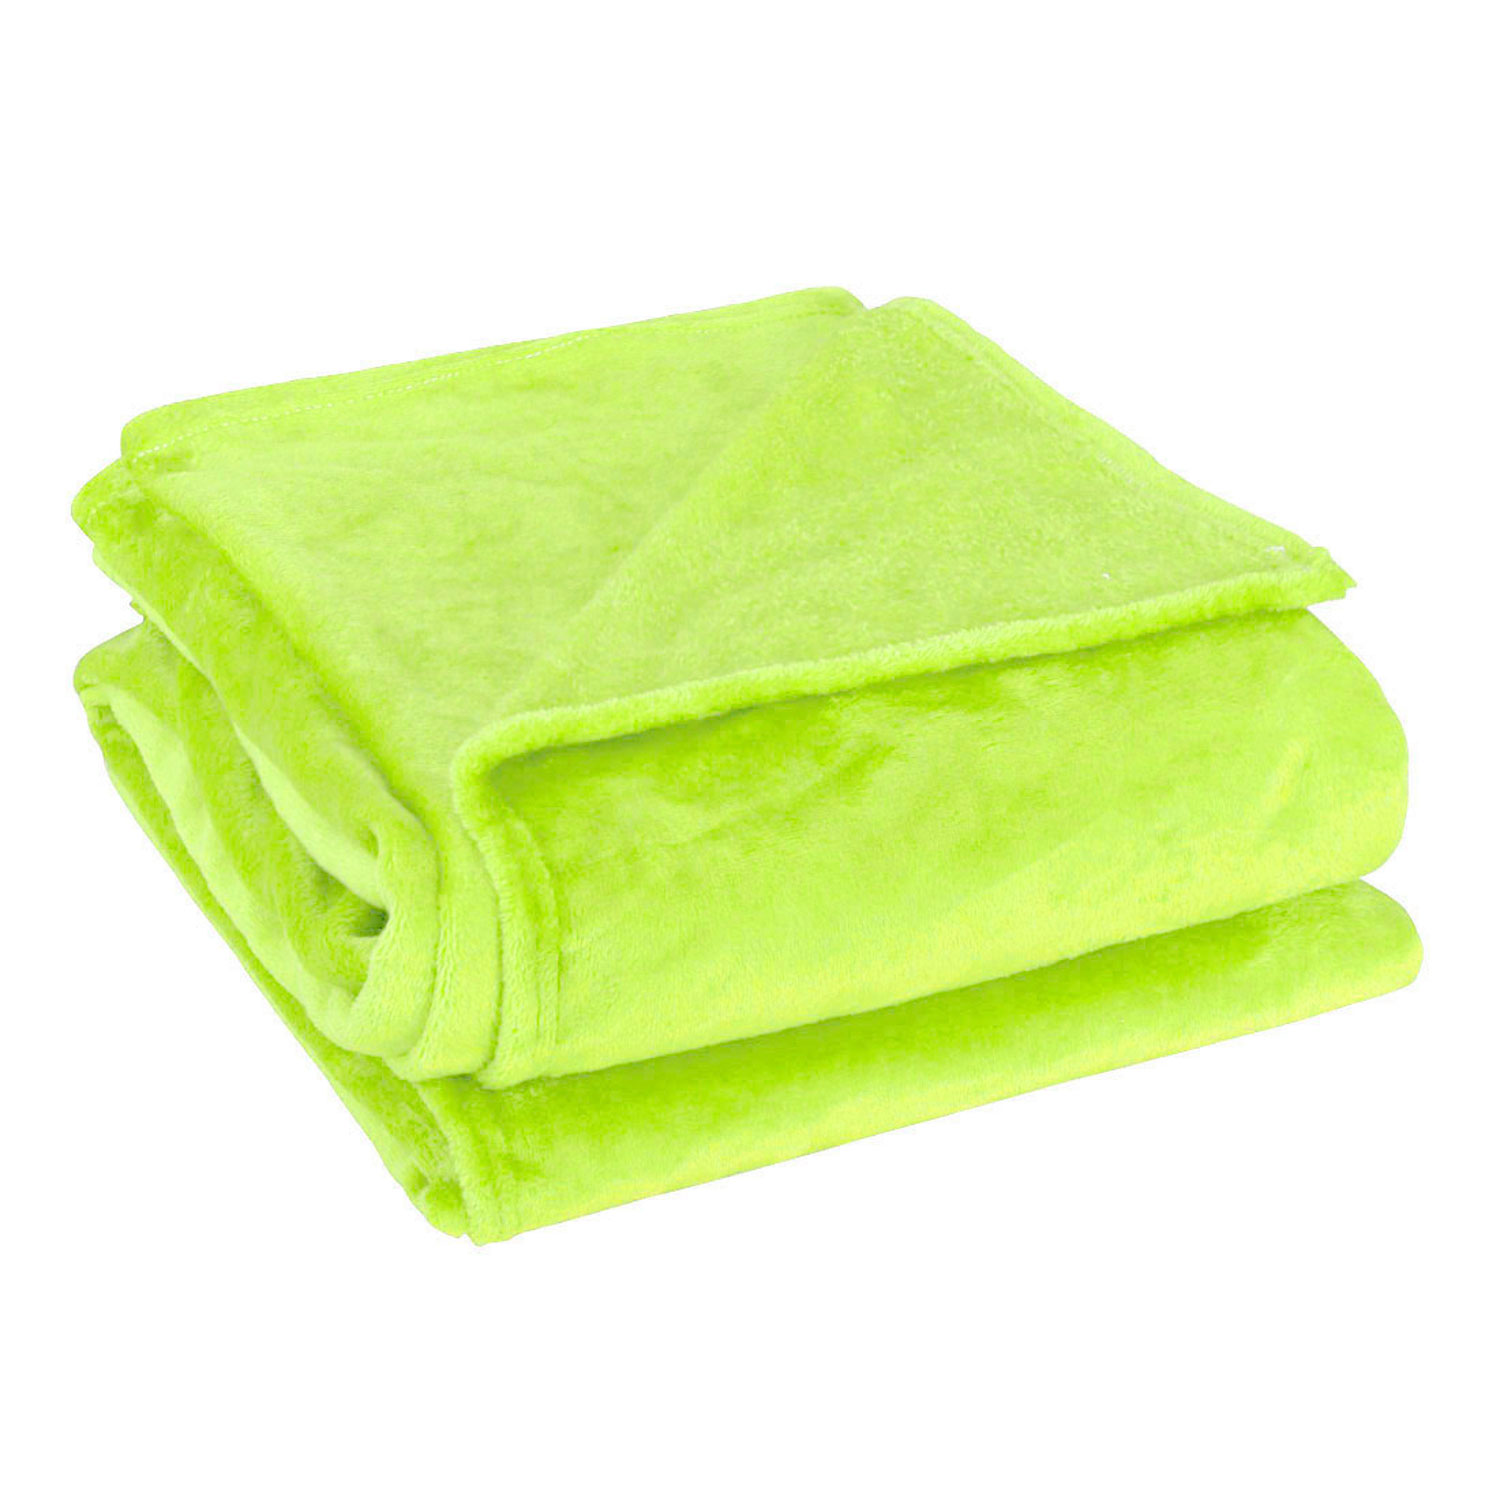 Super Soft Plush Fleece Sofa Bed Cover Warm Blanket Throw Lime Green King